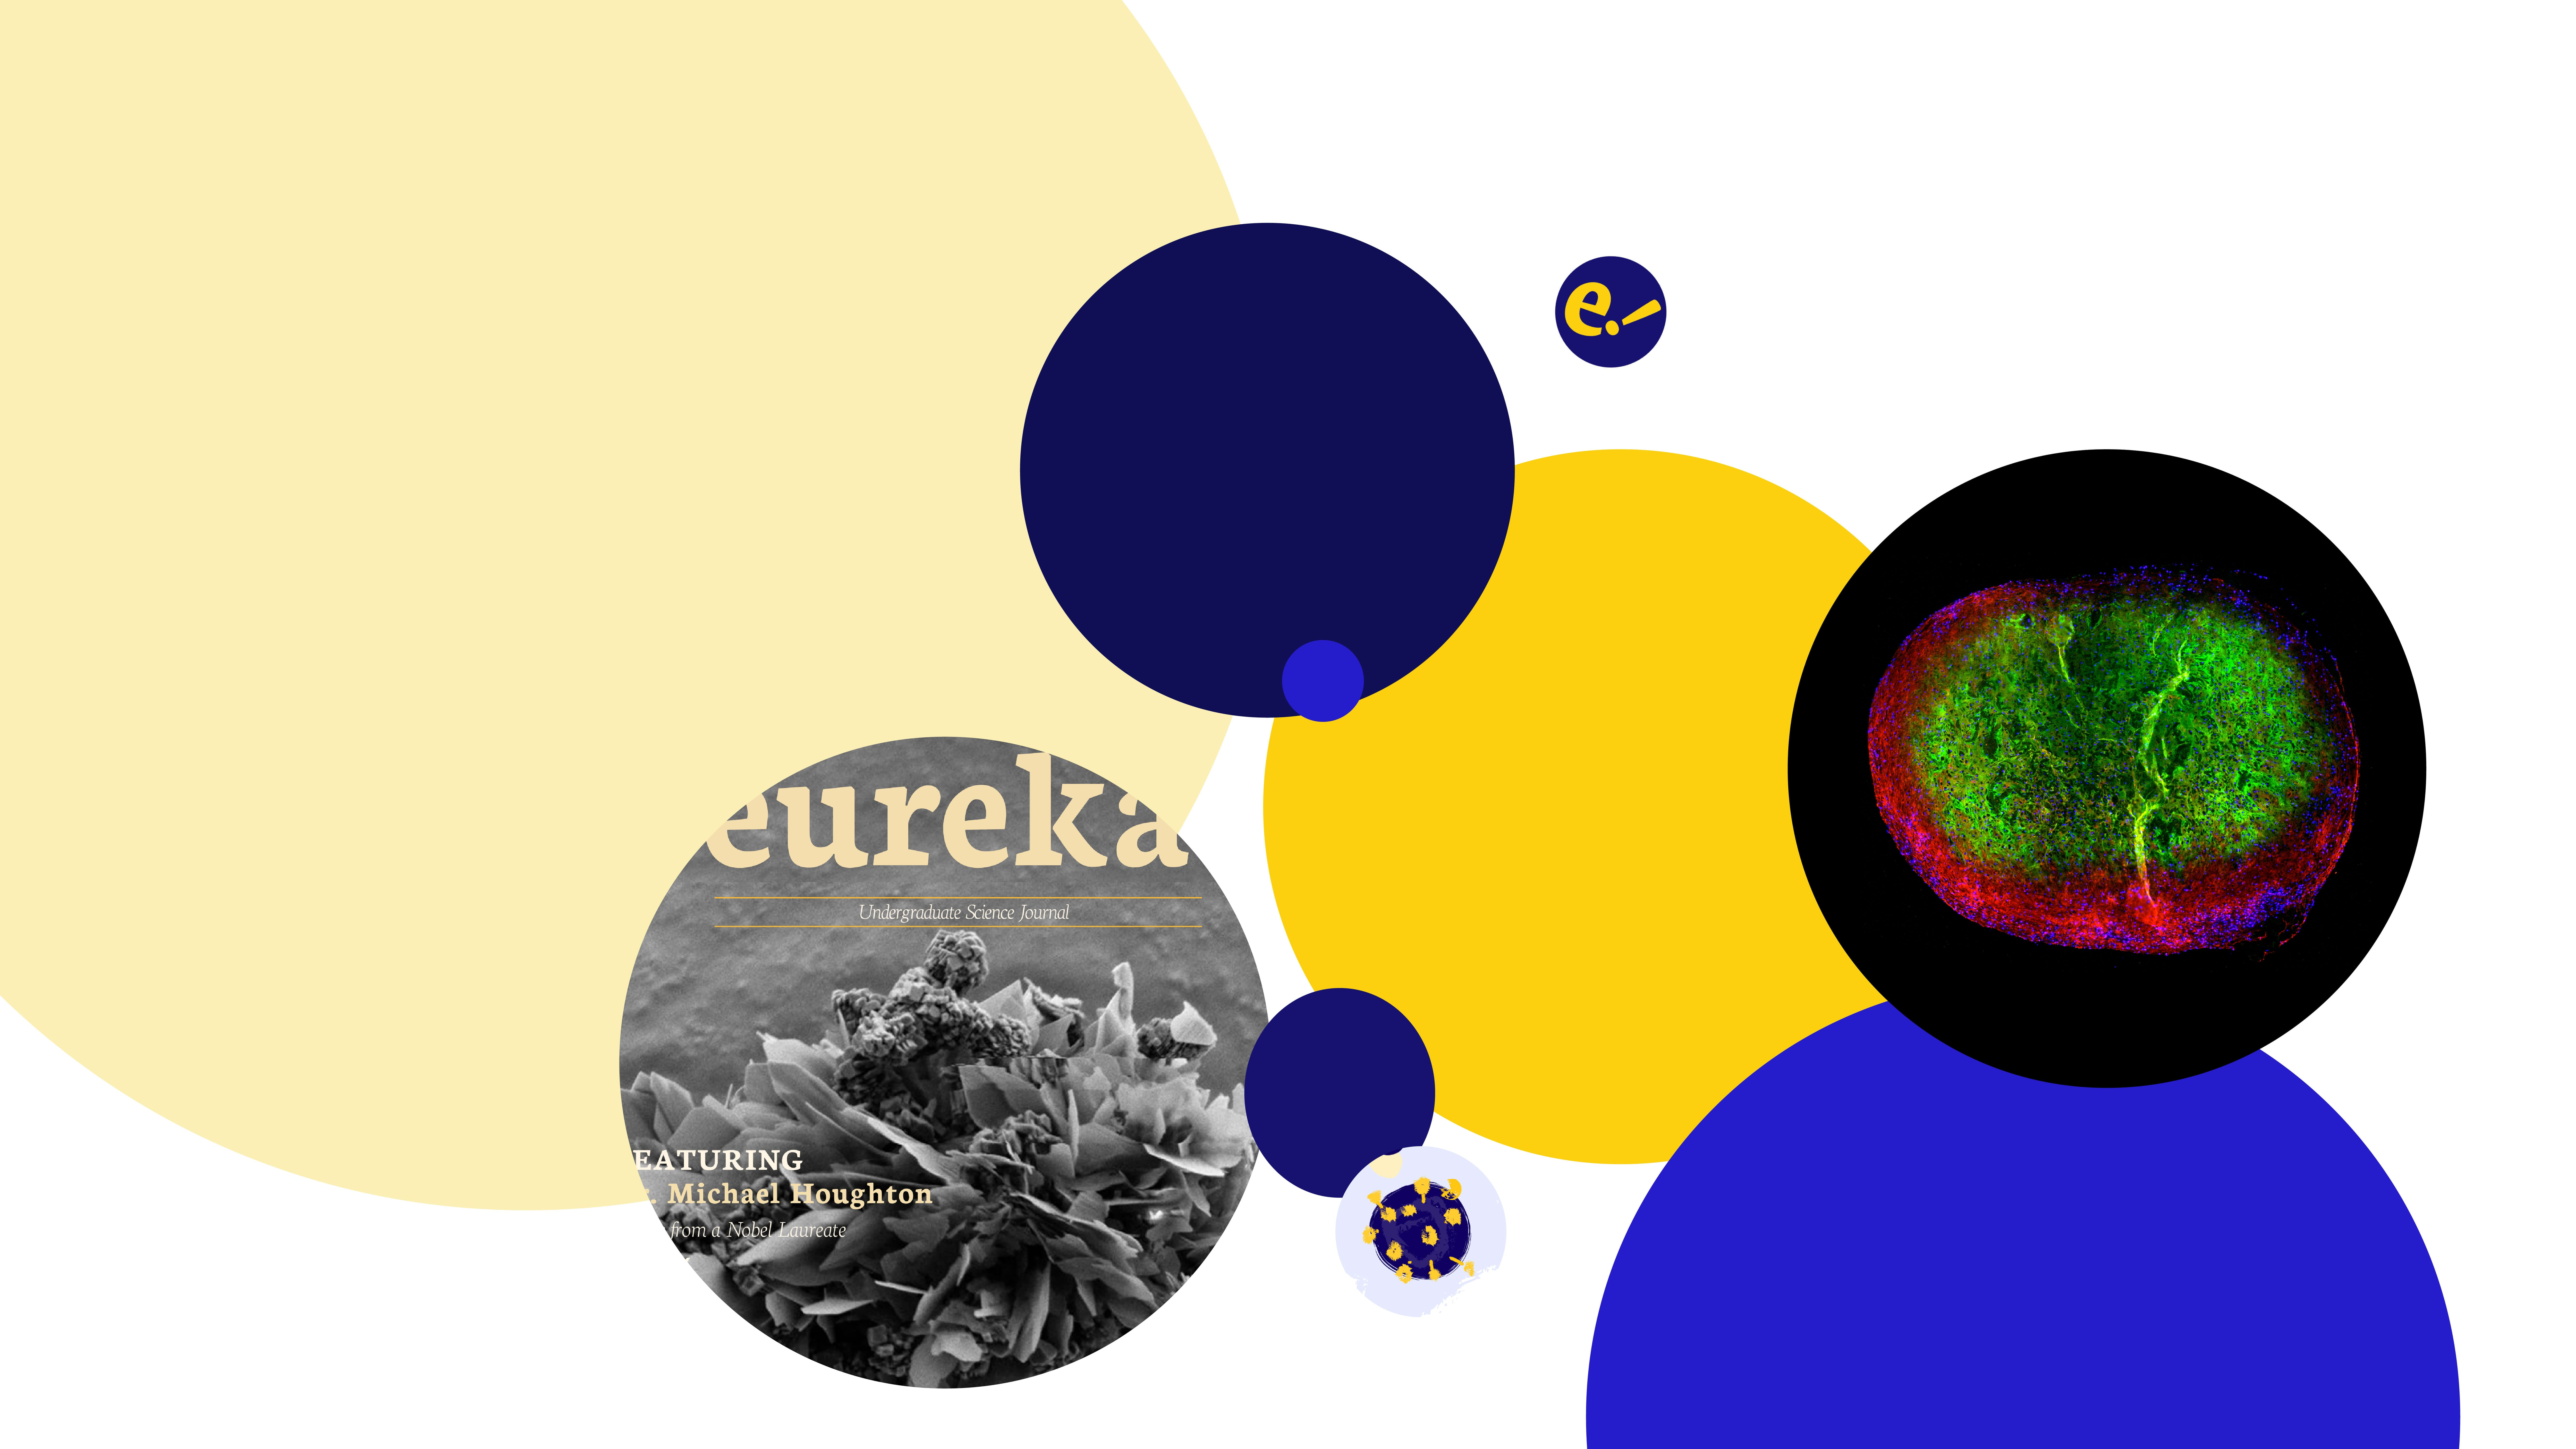 Abstract art of circles in the Eureka blue and yellow colours.